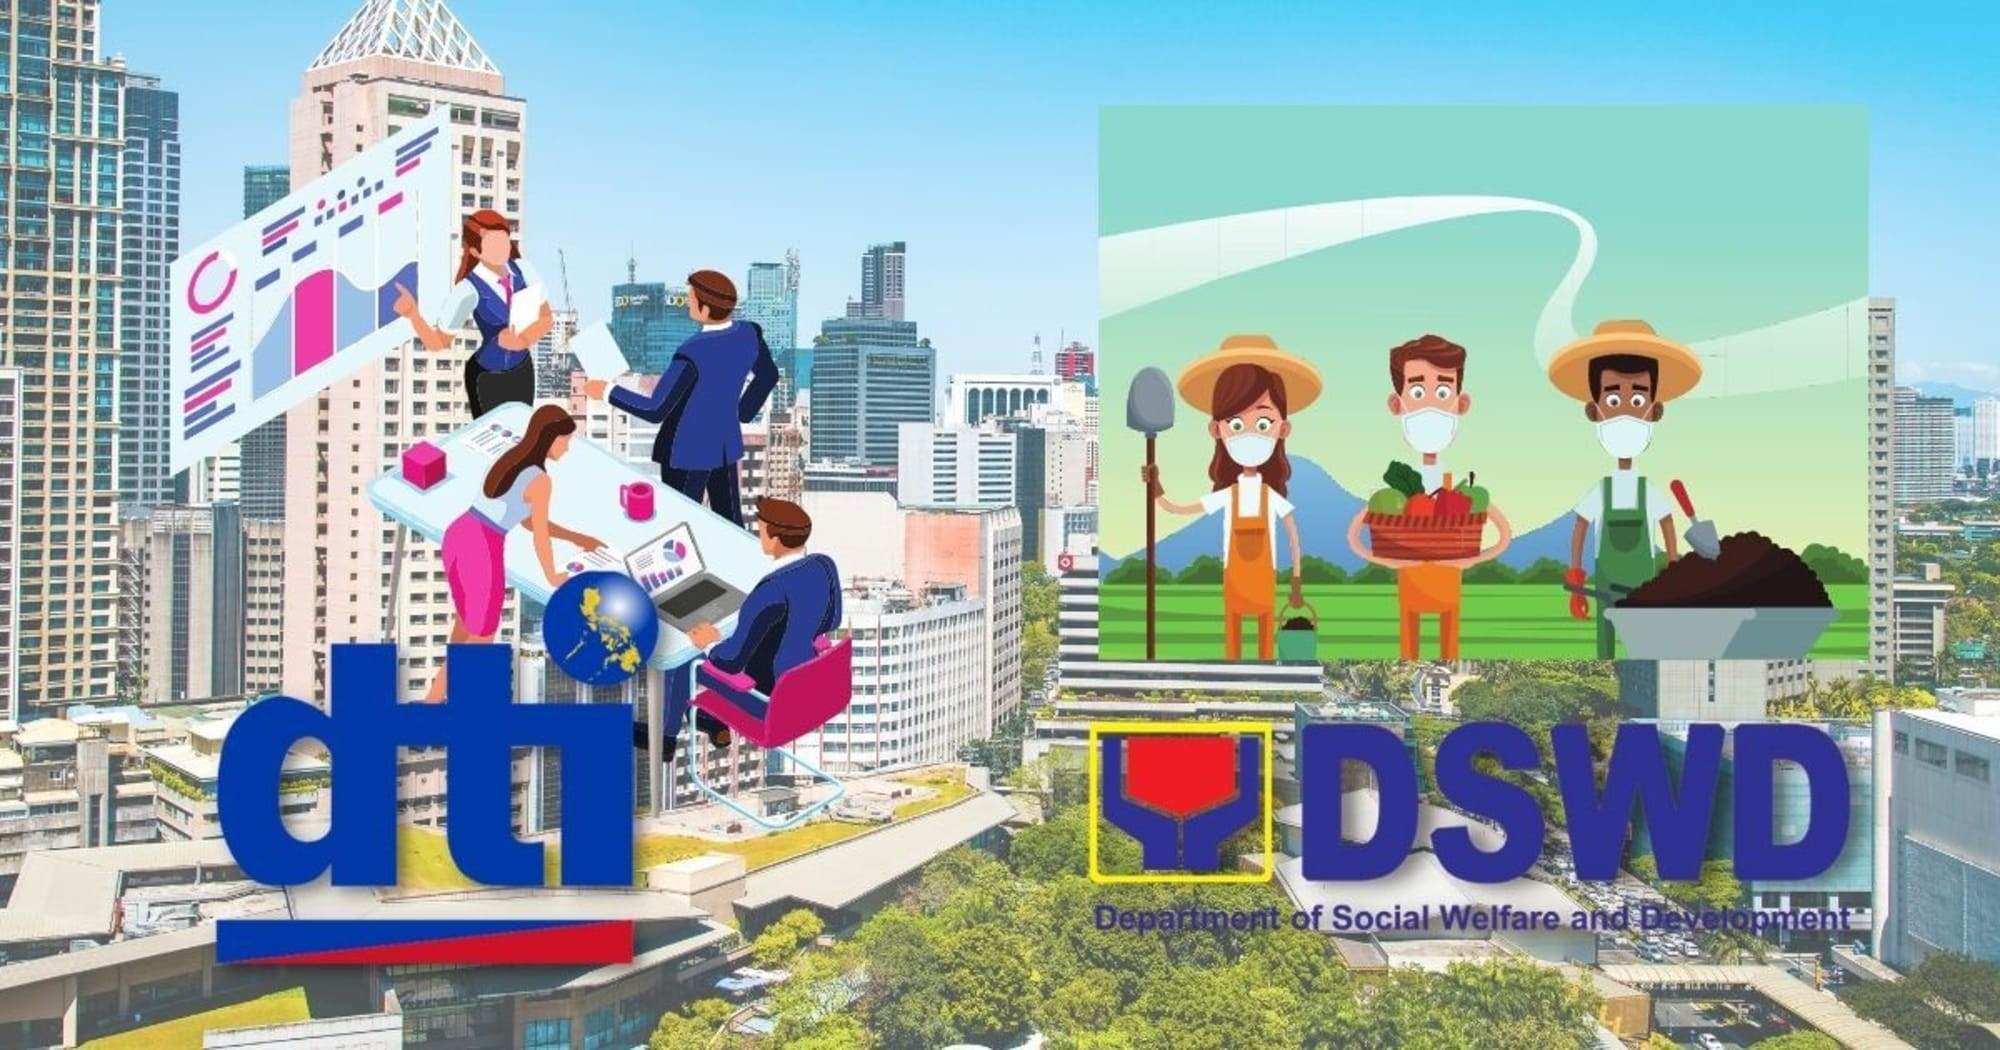 DTI program CARES ₱3.3 billion loans to help MSMEs and DSWD LAG released ₱138.15 million for livelihood assistance